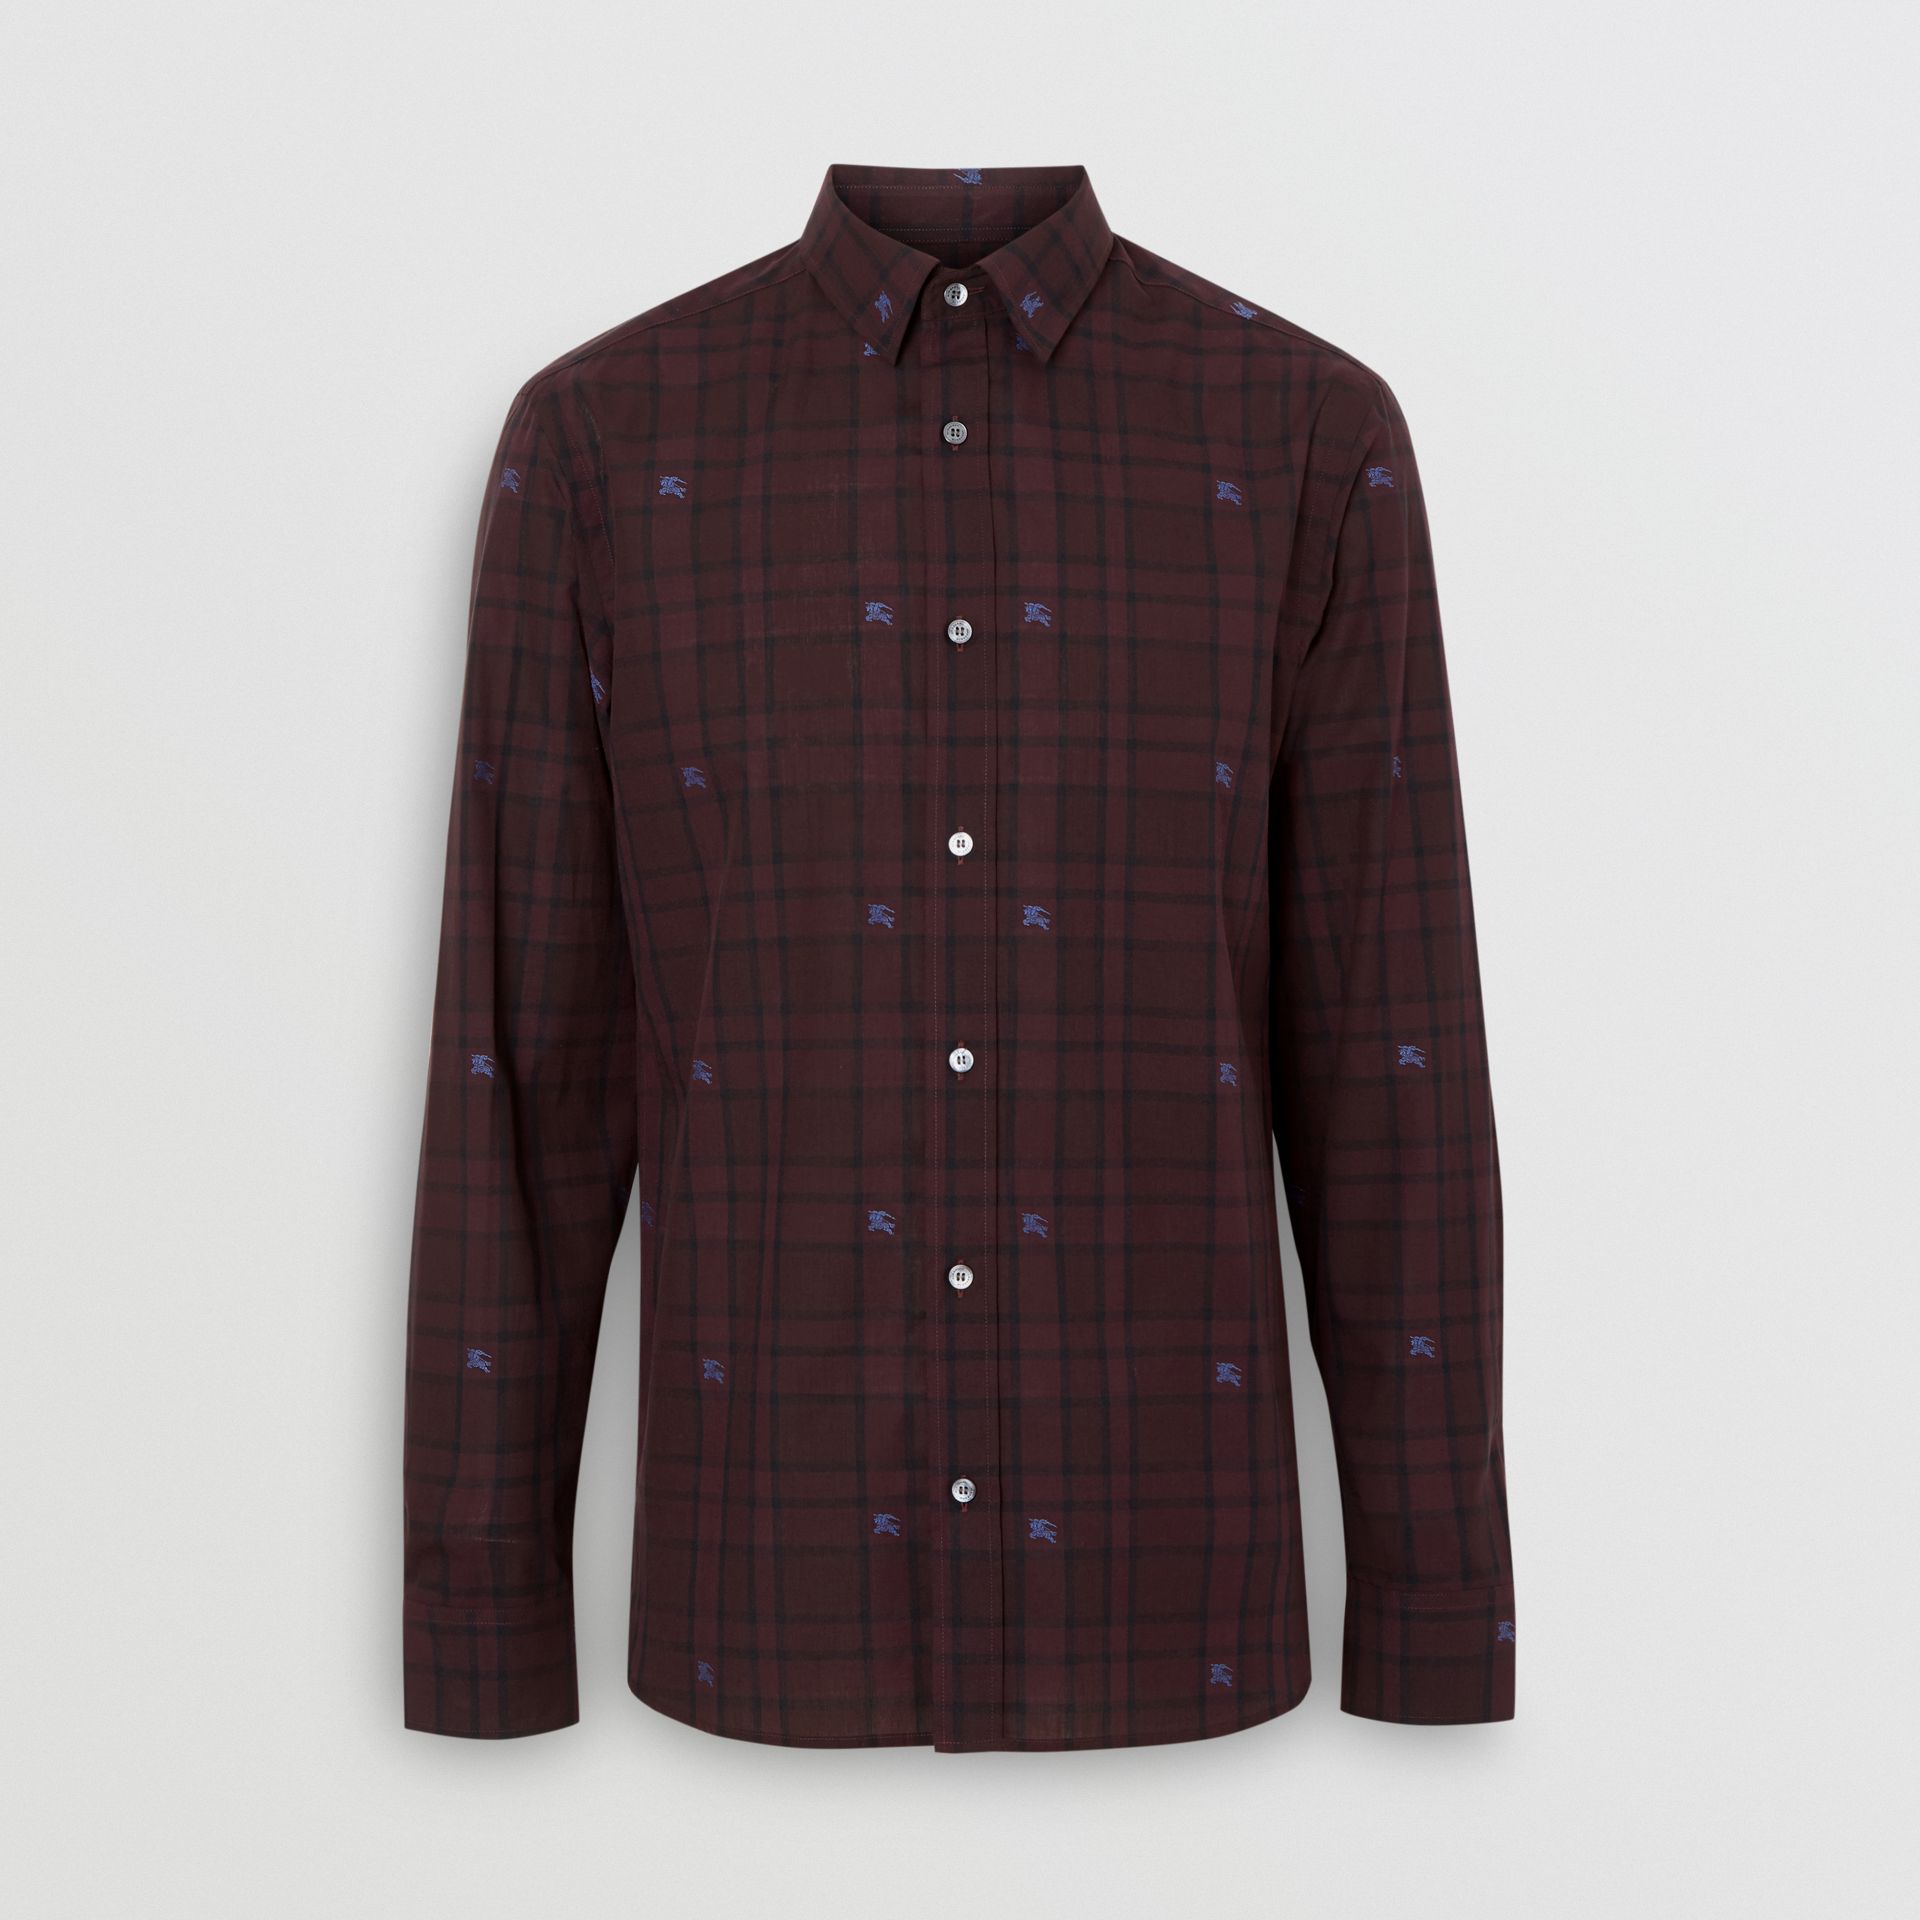 Equestrian Knight Check Cotton Shirt in Dark Elderberry - Men | Burberry United States - gallery image 3